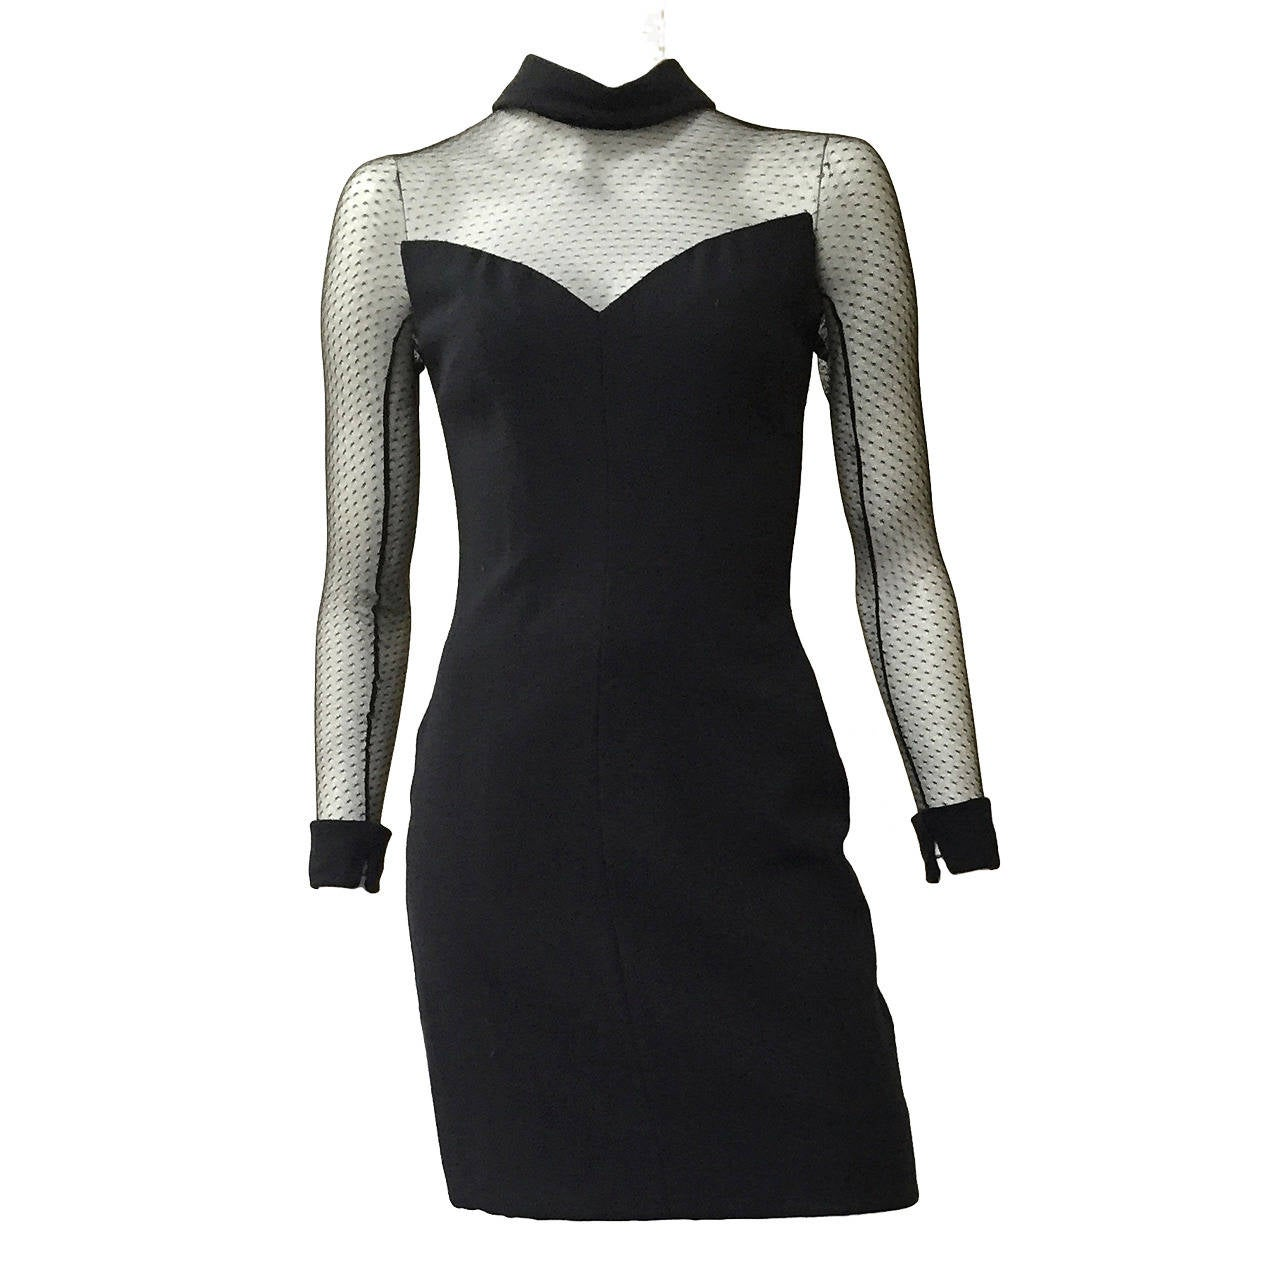 Scaasi Boutique 80s black cocktail dress size 4. For Sale